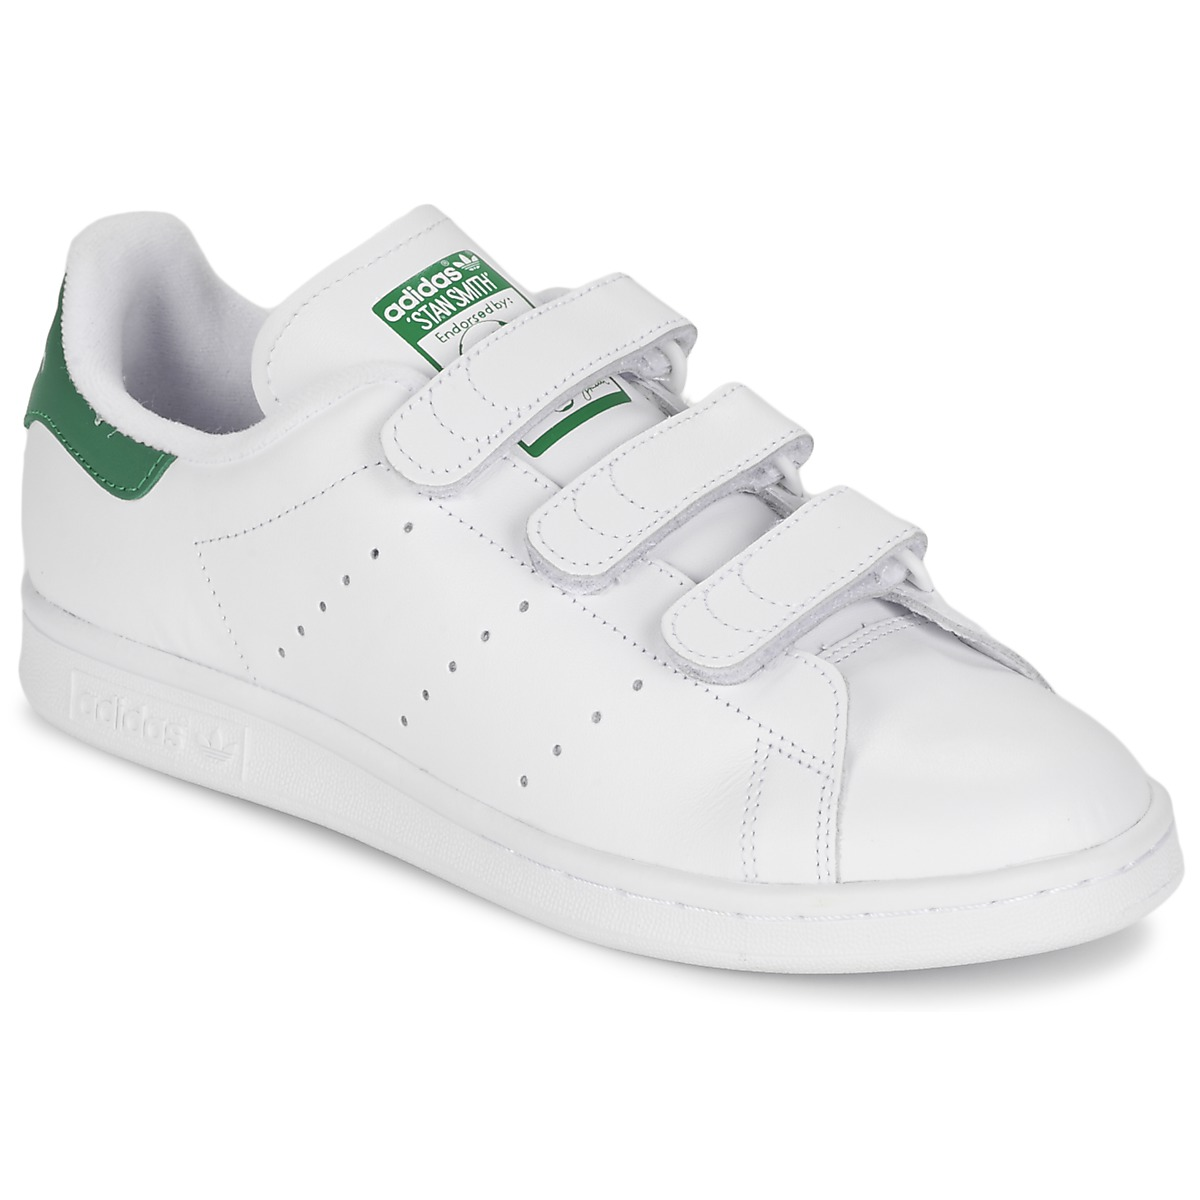 new arrival 4f9f7 7b6df Chaussures Baskets basses adidas Originals STAN SMITH CF Blanc   vert